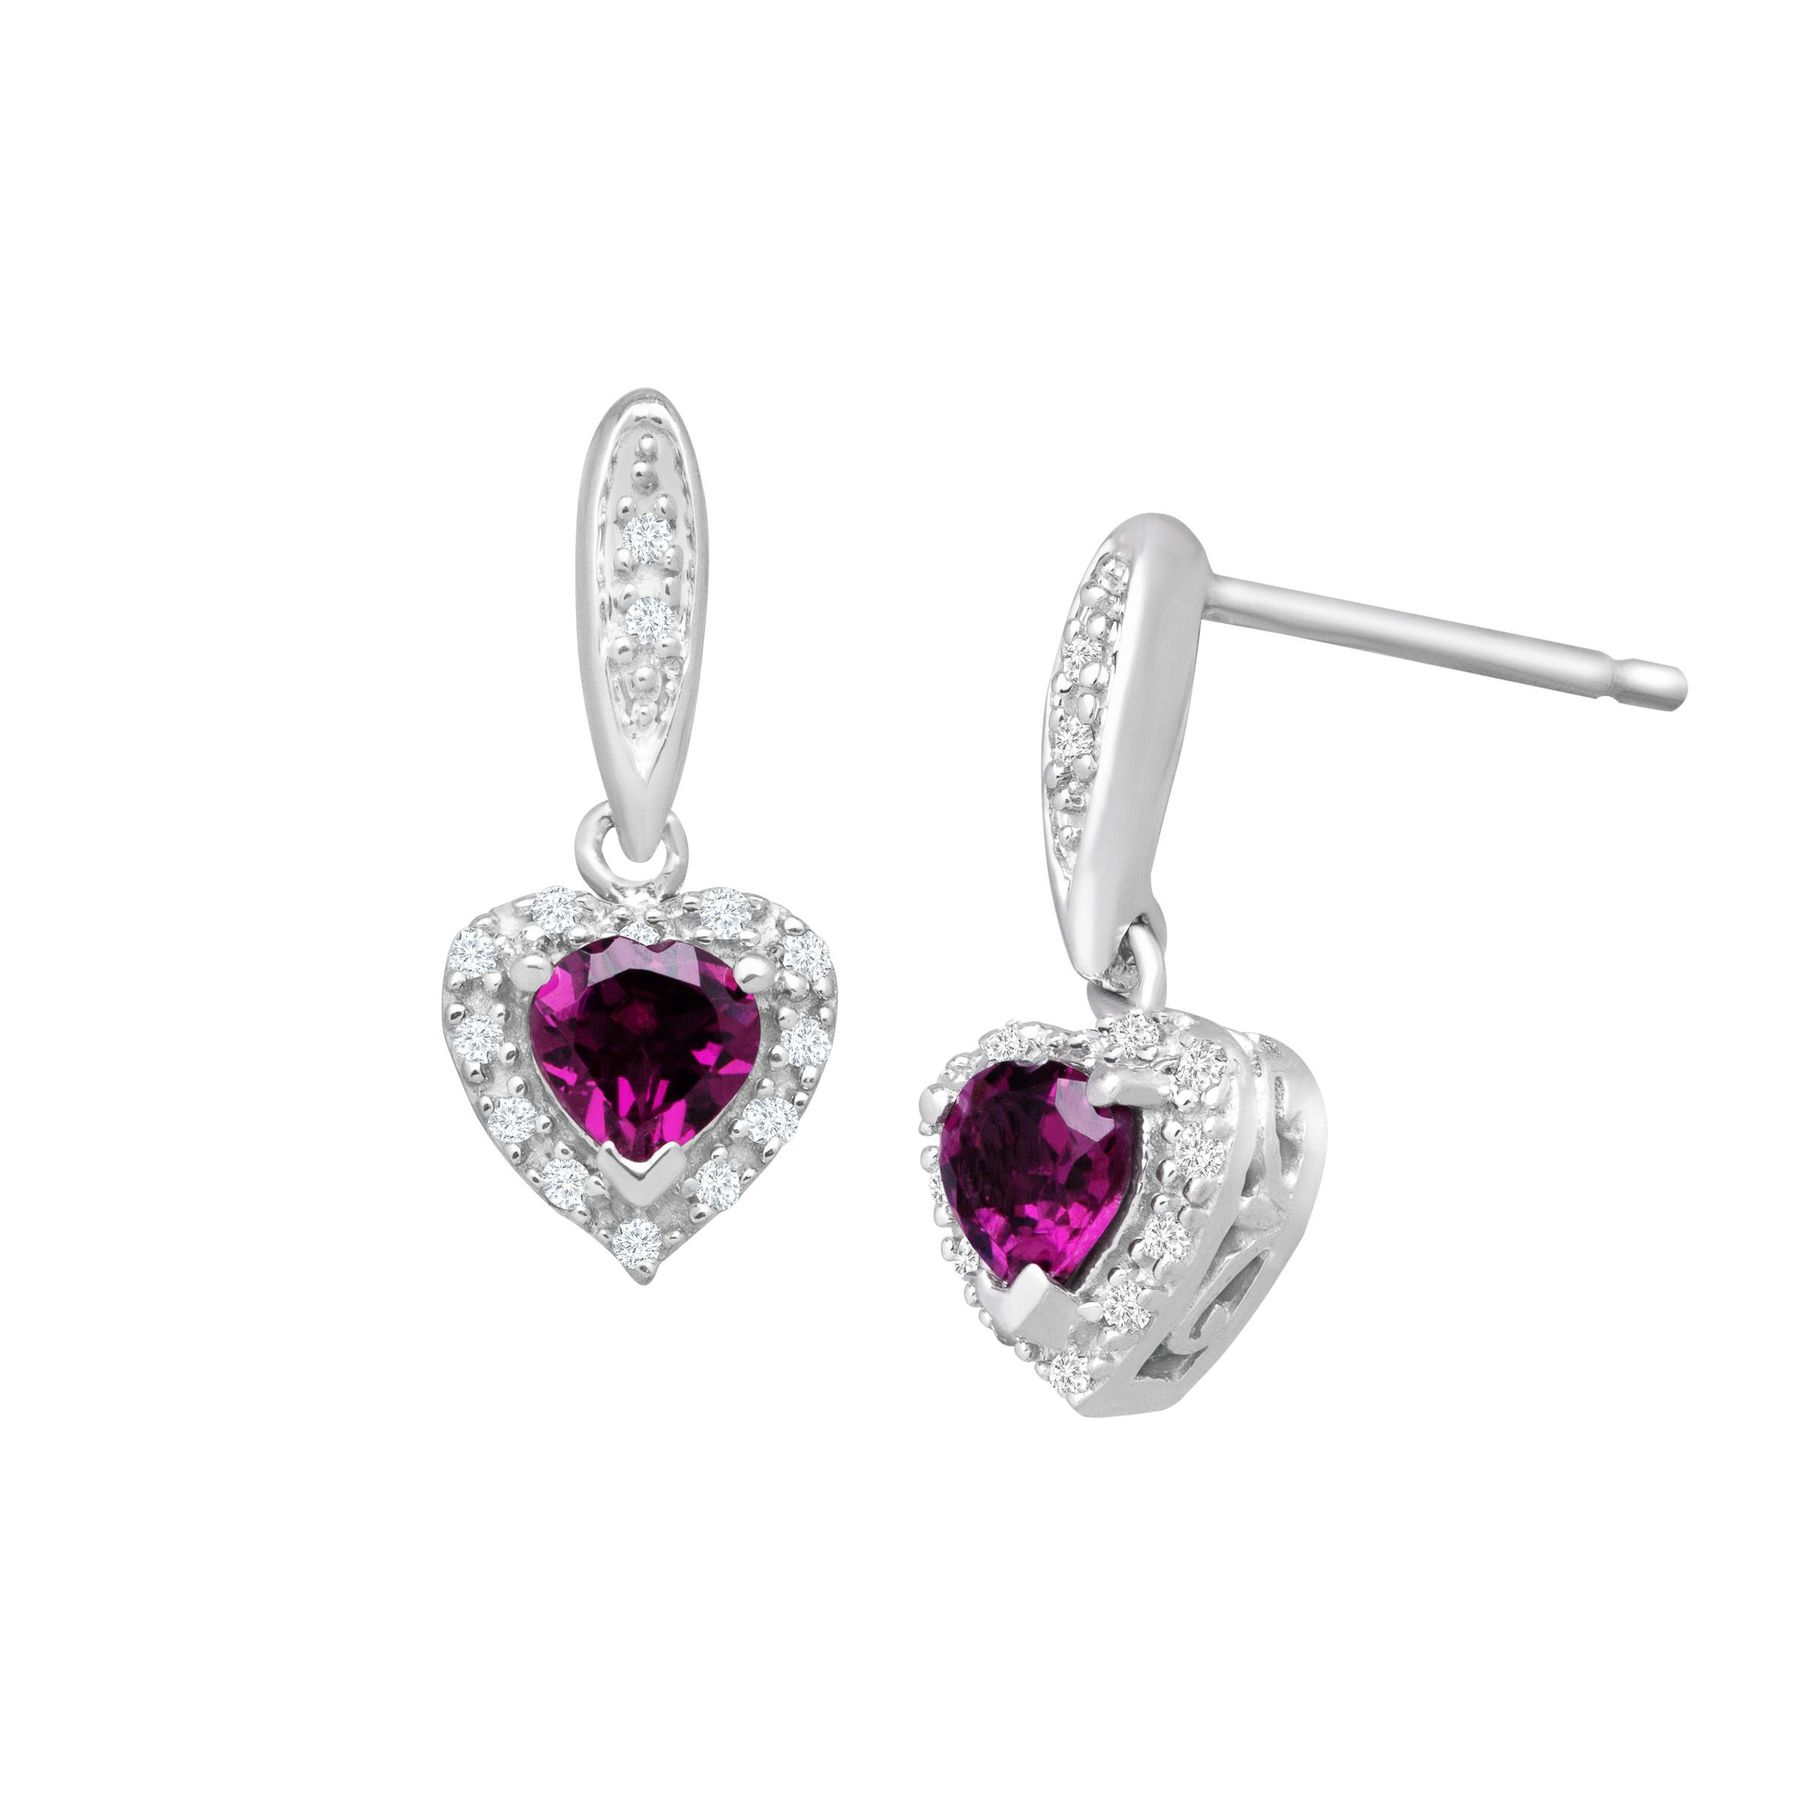 3 4 Ct Rhodolite Garnet Heart Drop Earrings